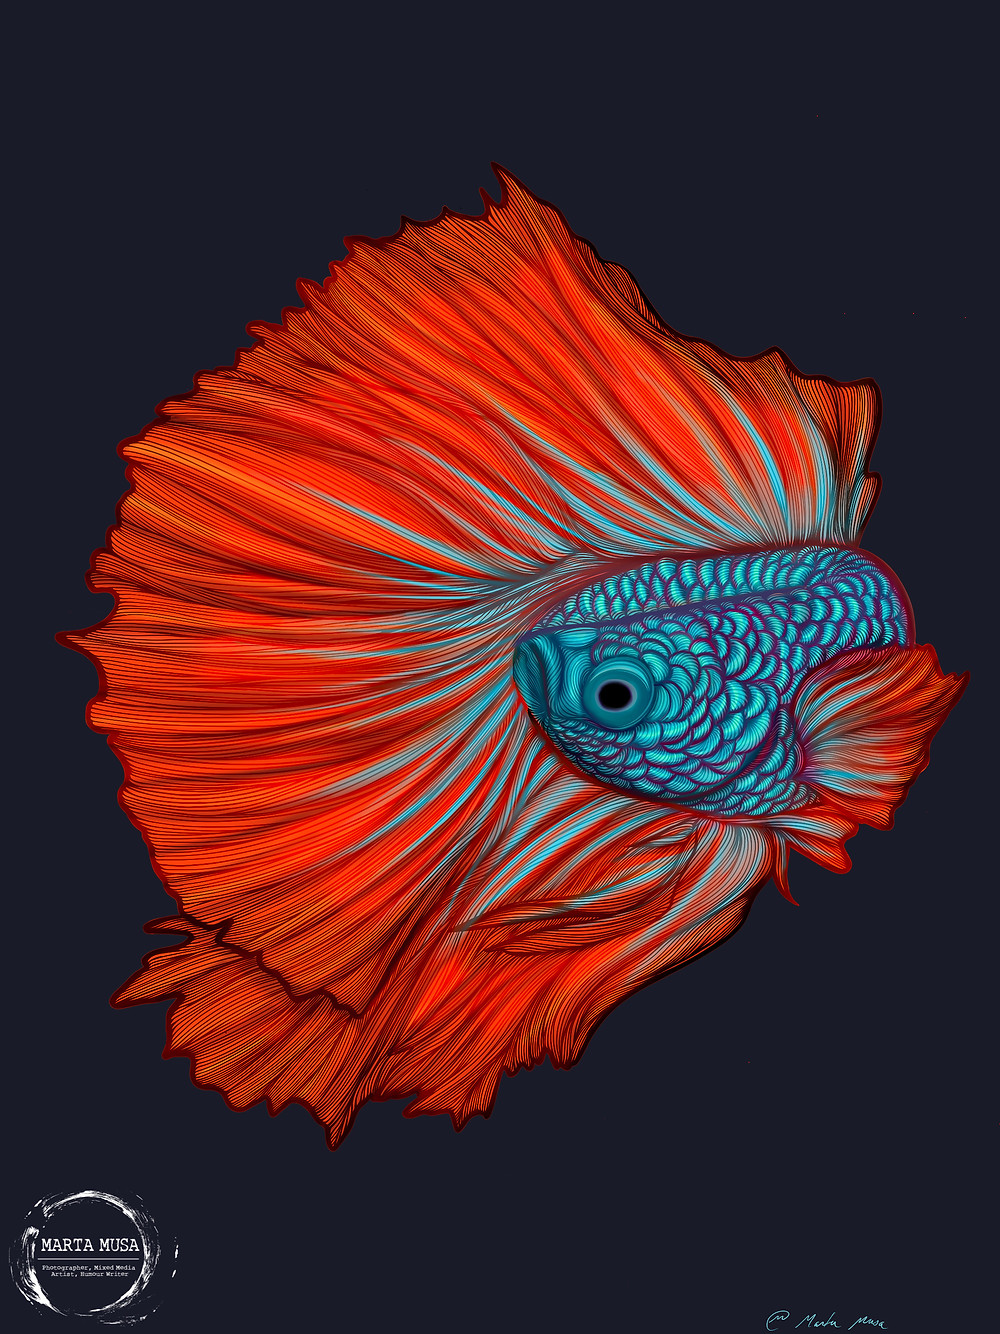 Contour line drawing of a Betta Fish against a dark blue background.  The body of the fish is coloured in a briliant turquoise with a gradient shifting to orange and red across the Betta Fish's fins.